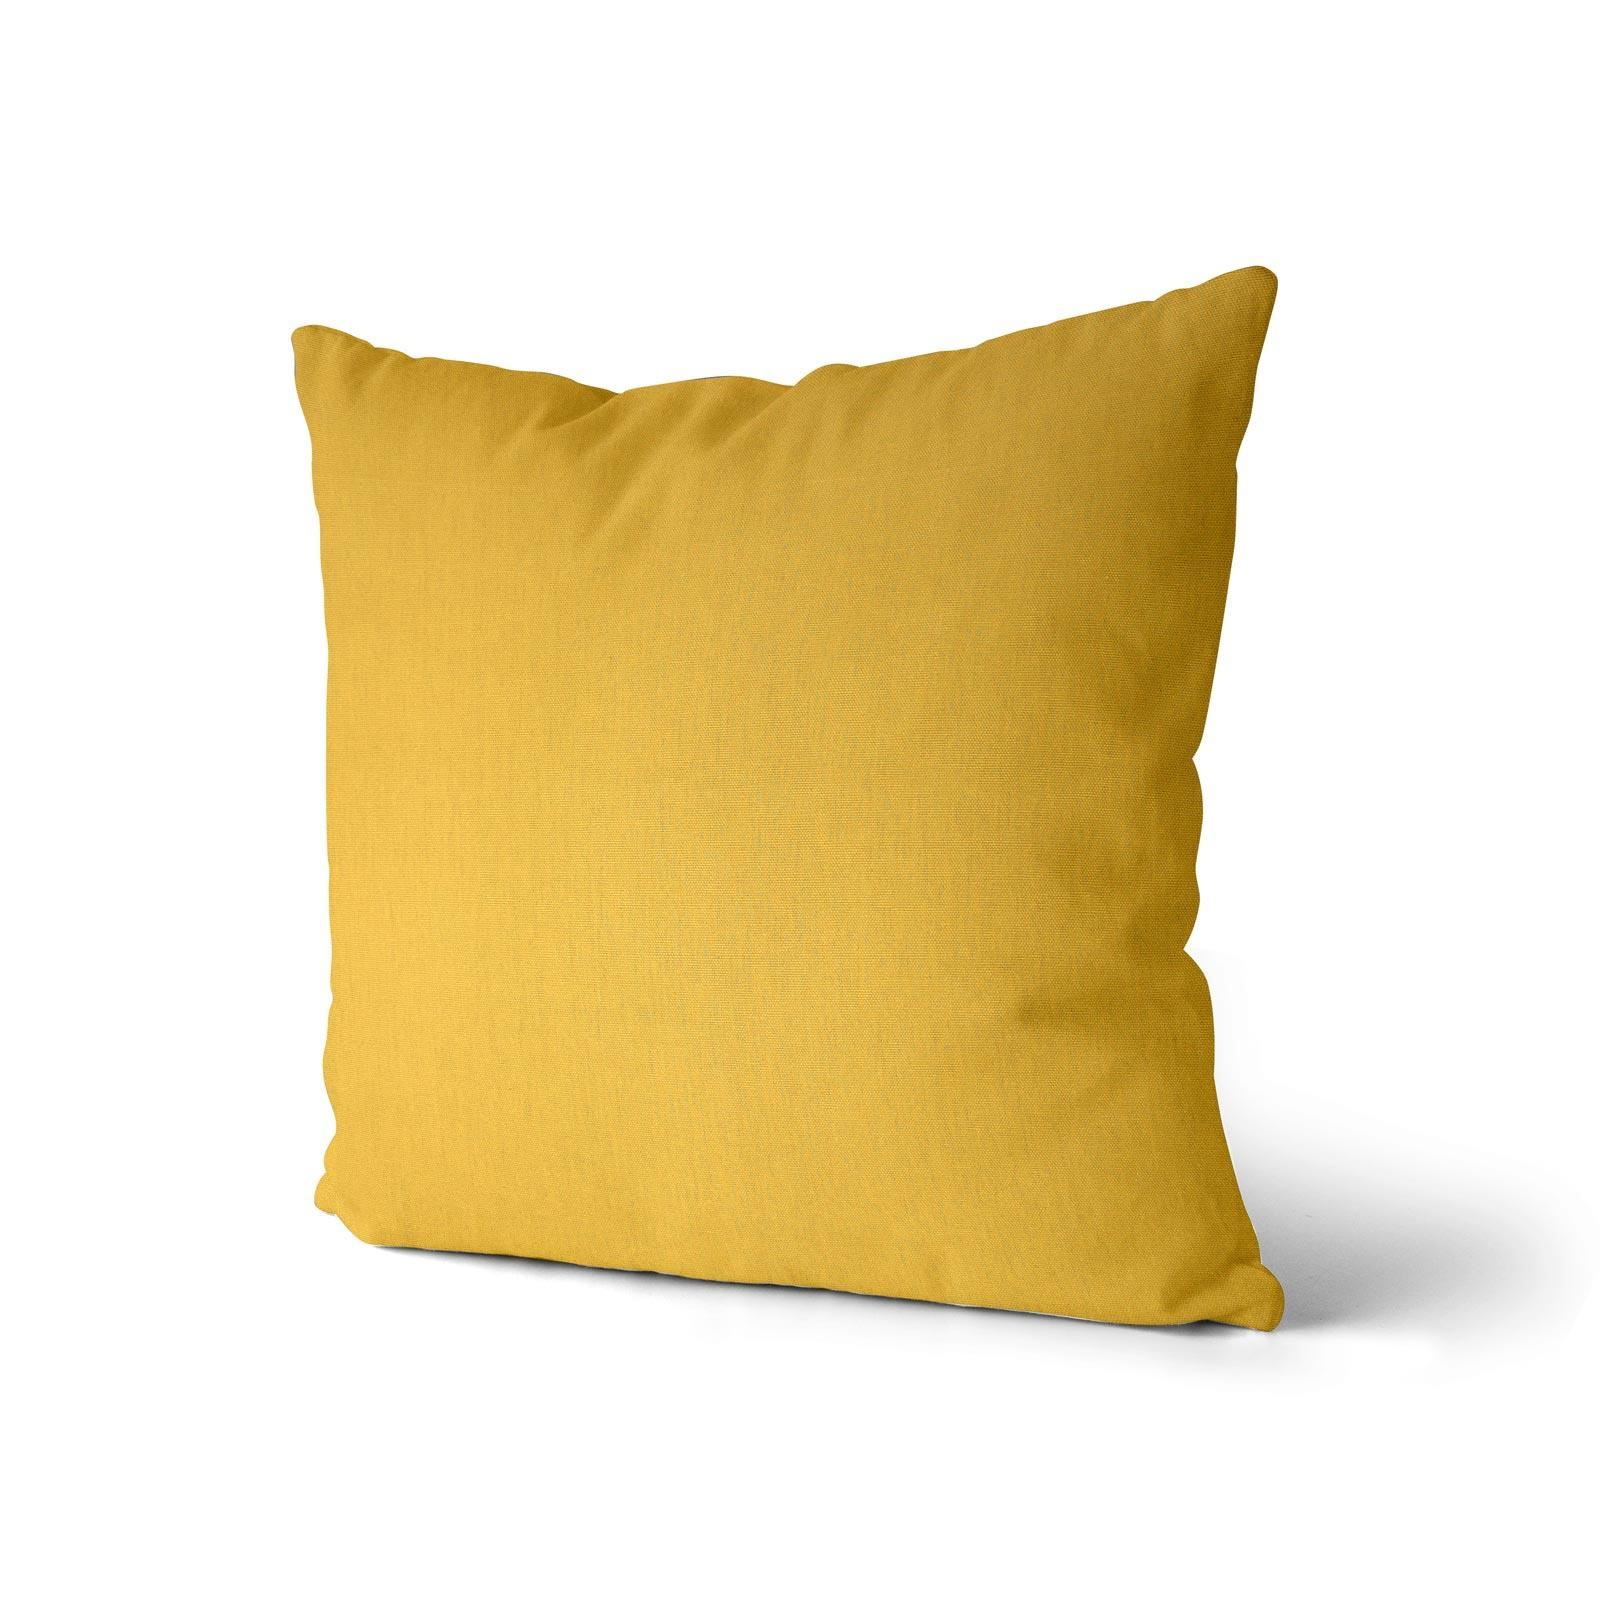 Grey-Ochre-Mustard-Cushion-Cover-Collection-17-034-18-034-Covers-Filled-Cushions thumbnail 71